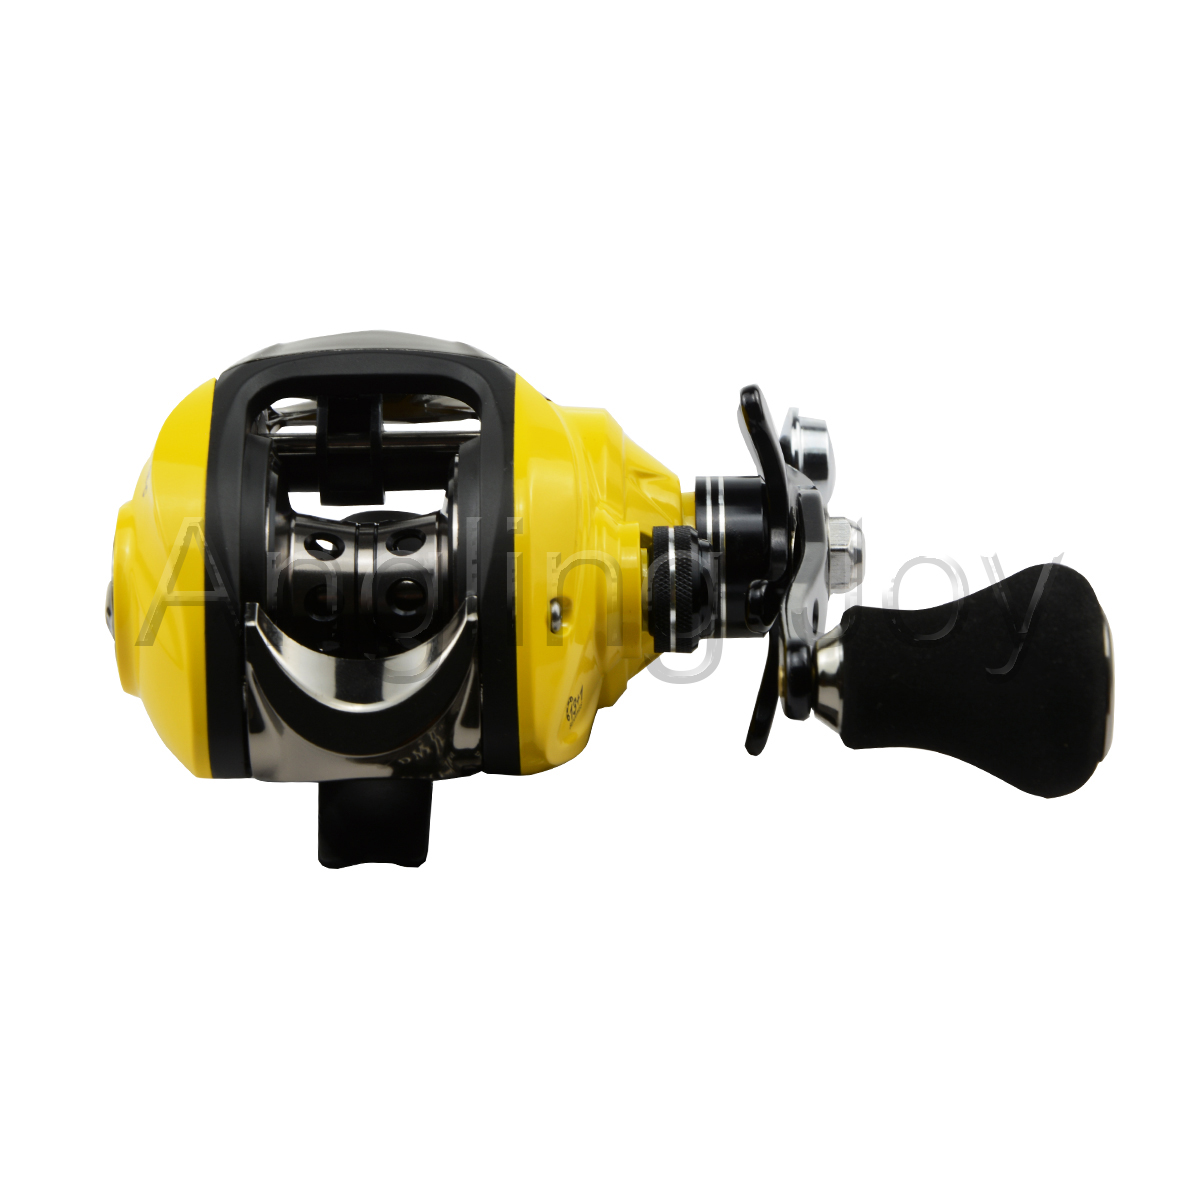 13 Ball Bearings High Speed Single Profile Handle Low Profile Single Baitcasting Fishing Reel d4c0e4